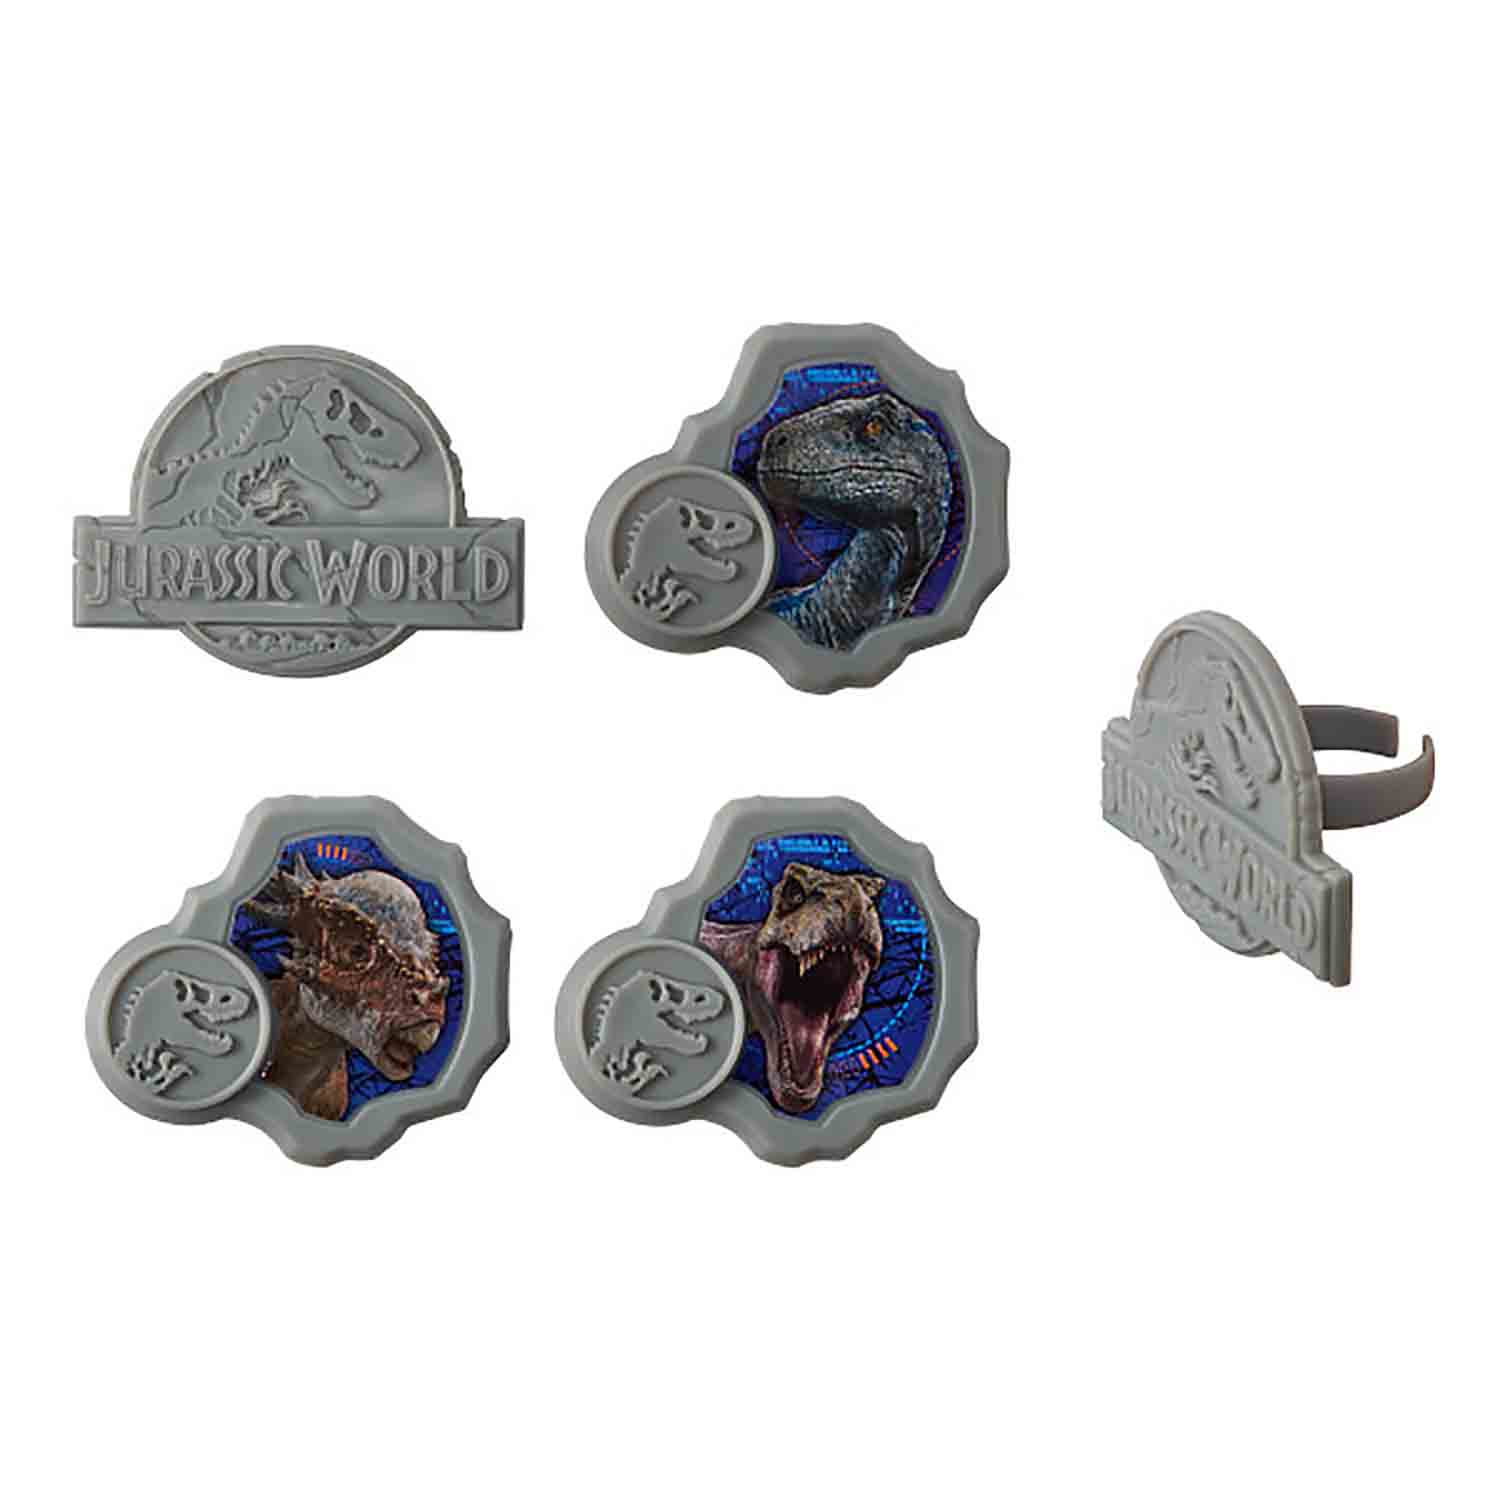 Jurassic World Rings